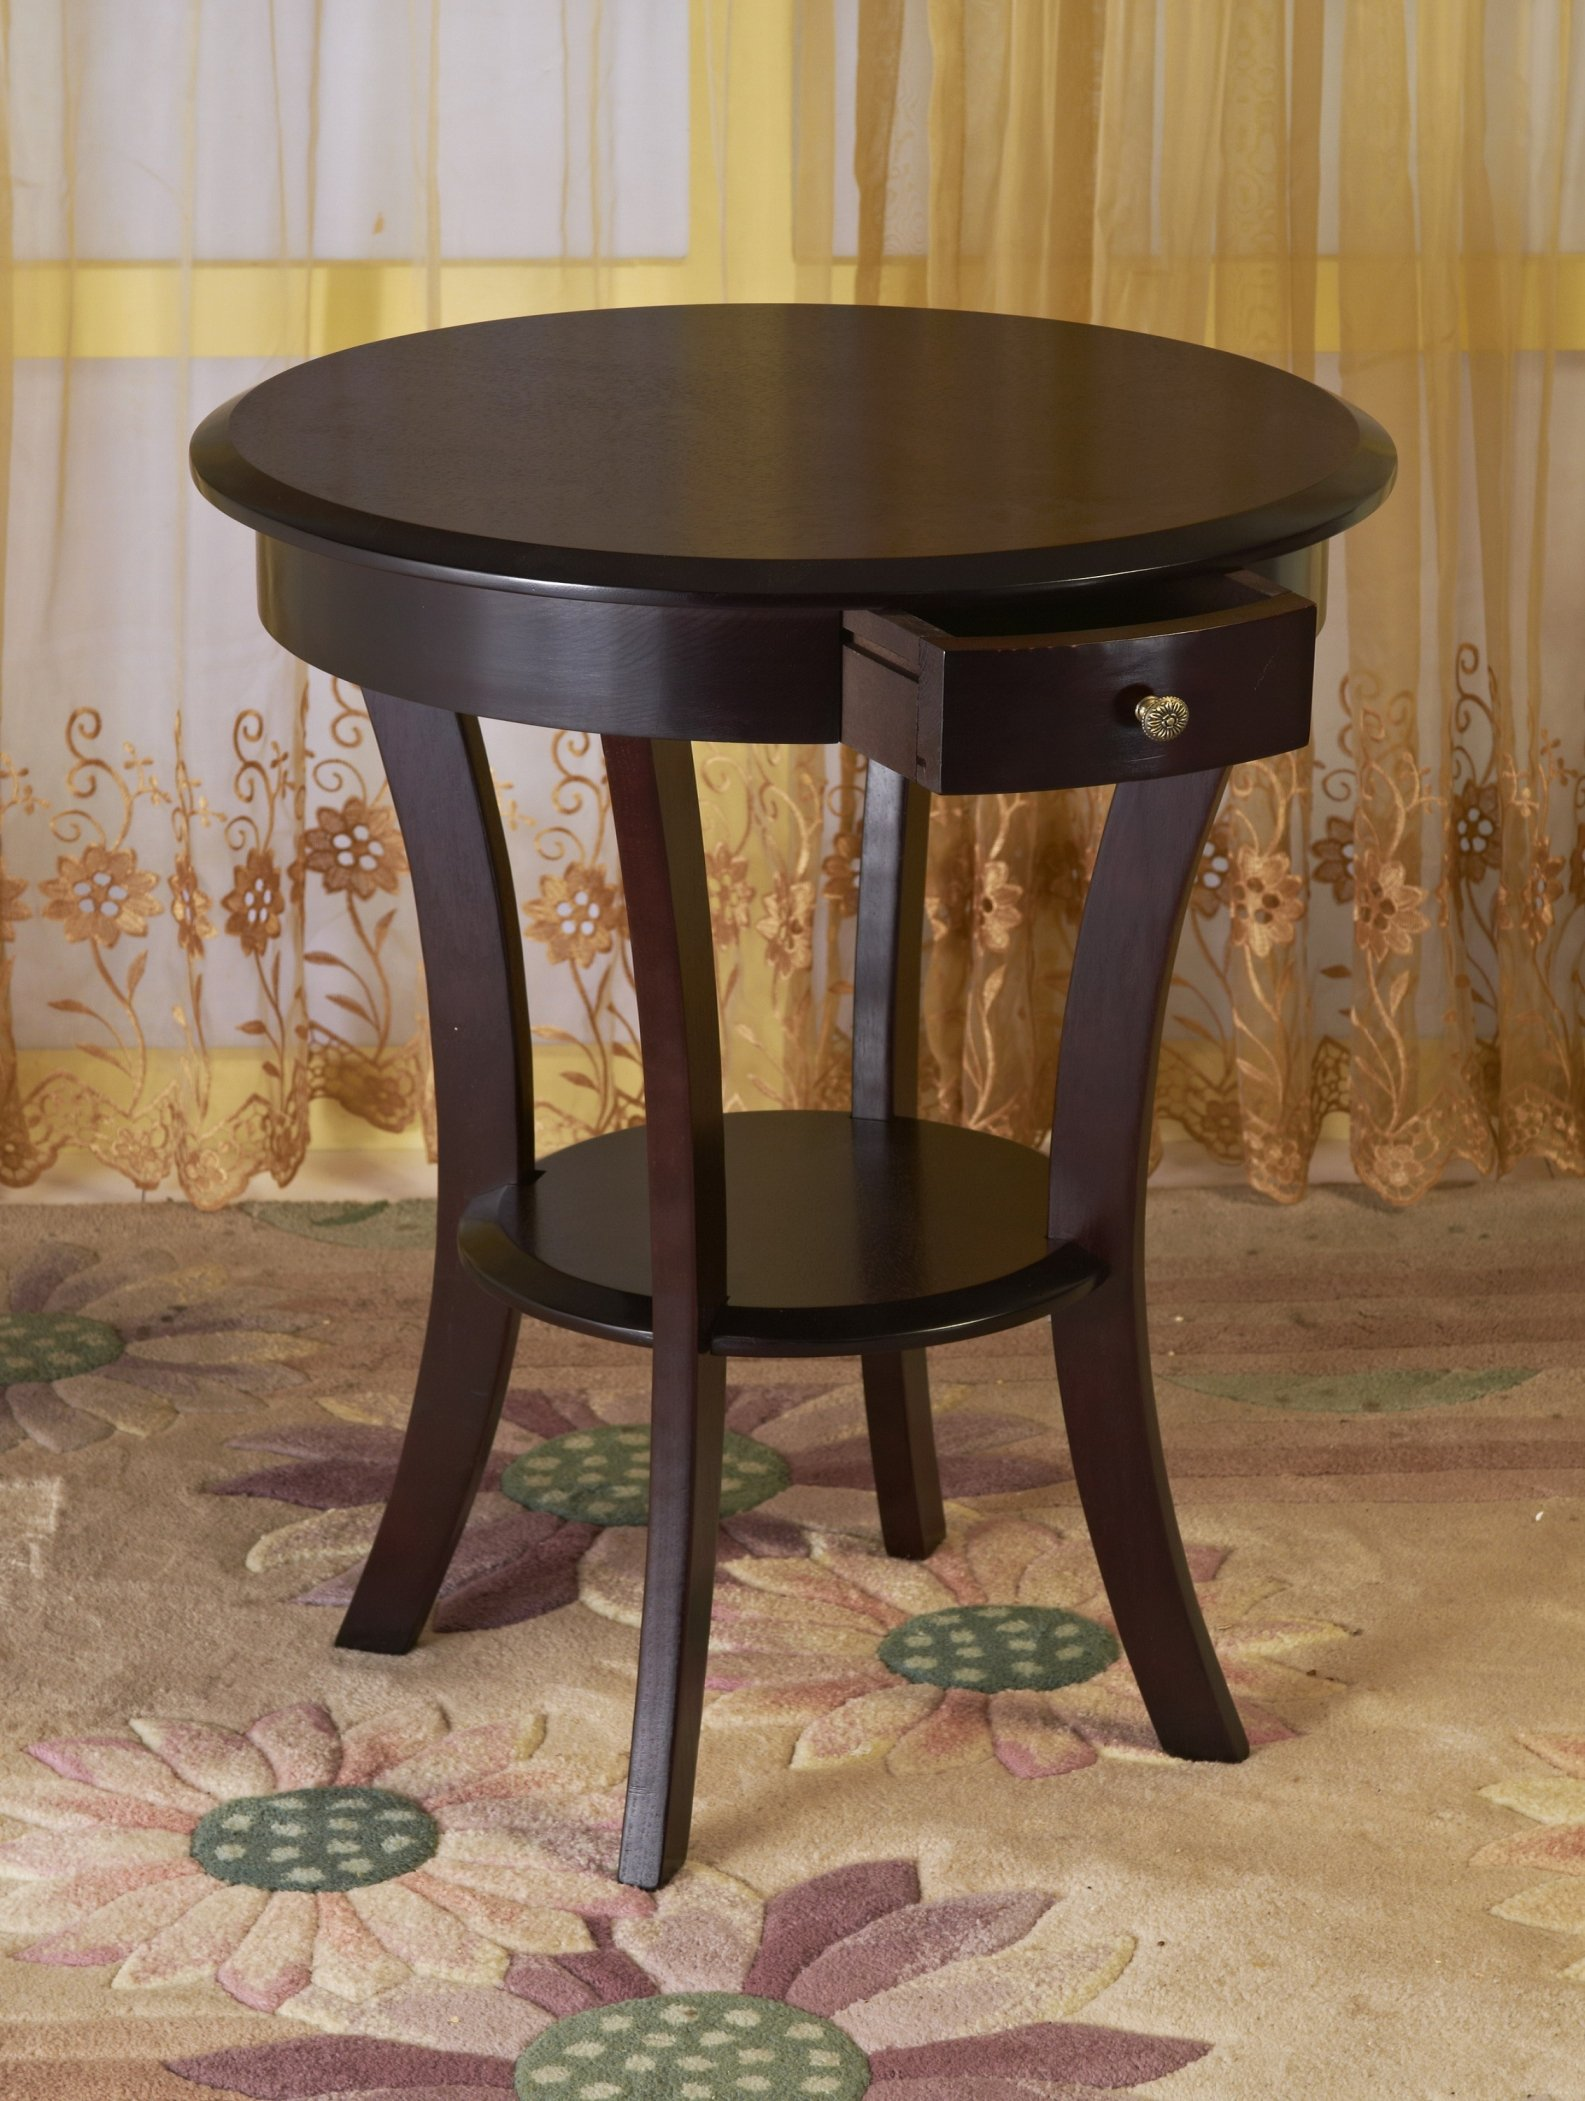 Get Quotations Frenchi Home Furnishing Furniture Wood Round Table With Drawer Shelf Espresso